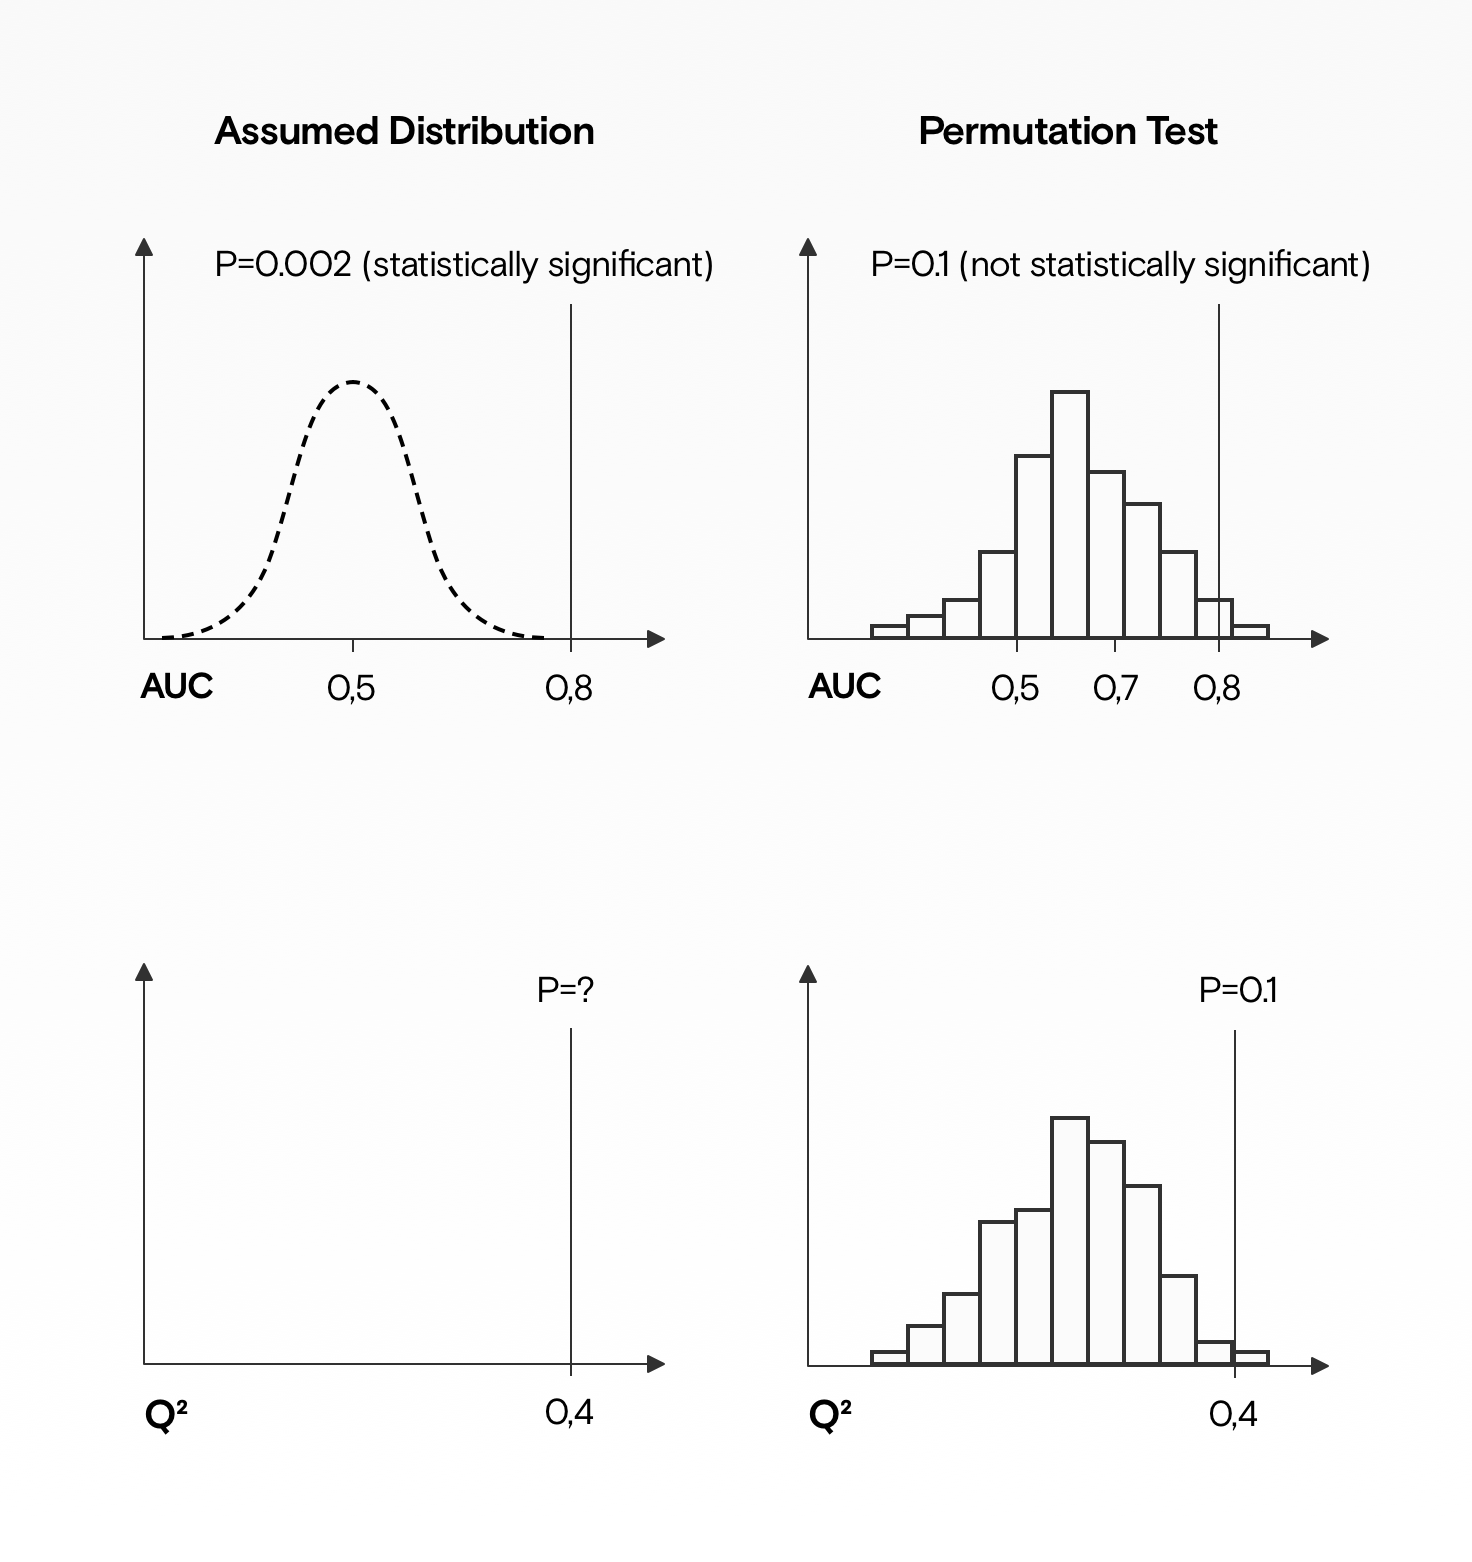 Two AUC charts, showing how the p-value might look significant with an assumed distribution around a random metric while after permutation tests the resulting model performance is no longer significant. Permutation tests can also help discover what a good value is for metrics like Q-squared, where it's unclear what a good value should be.